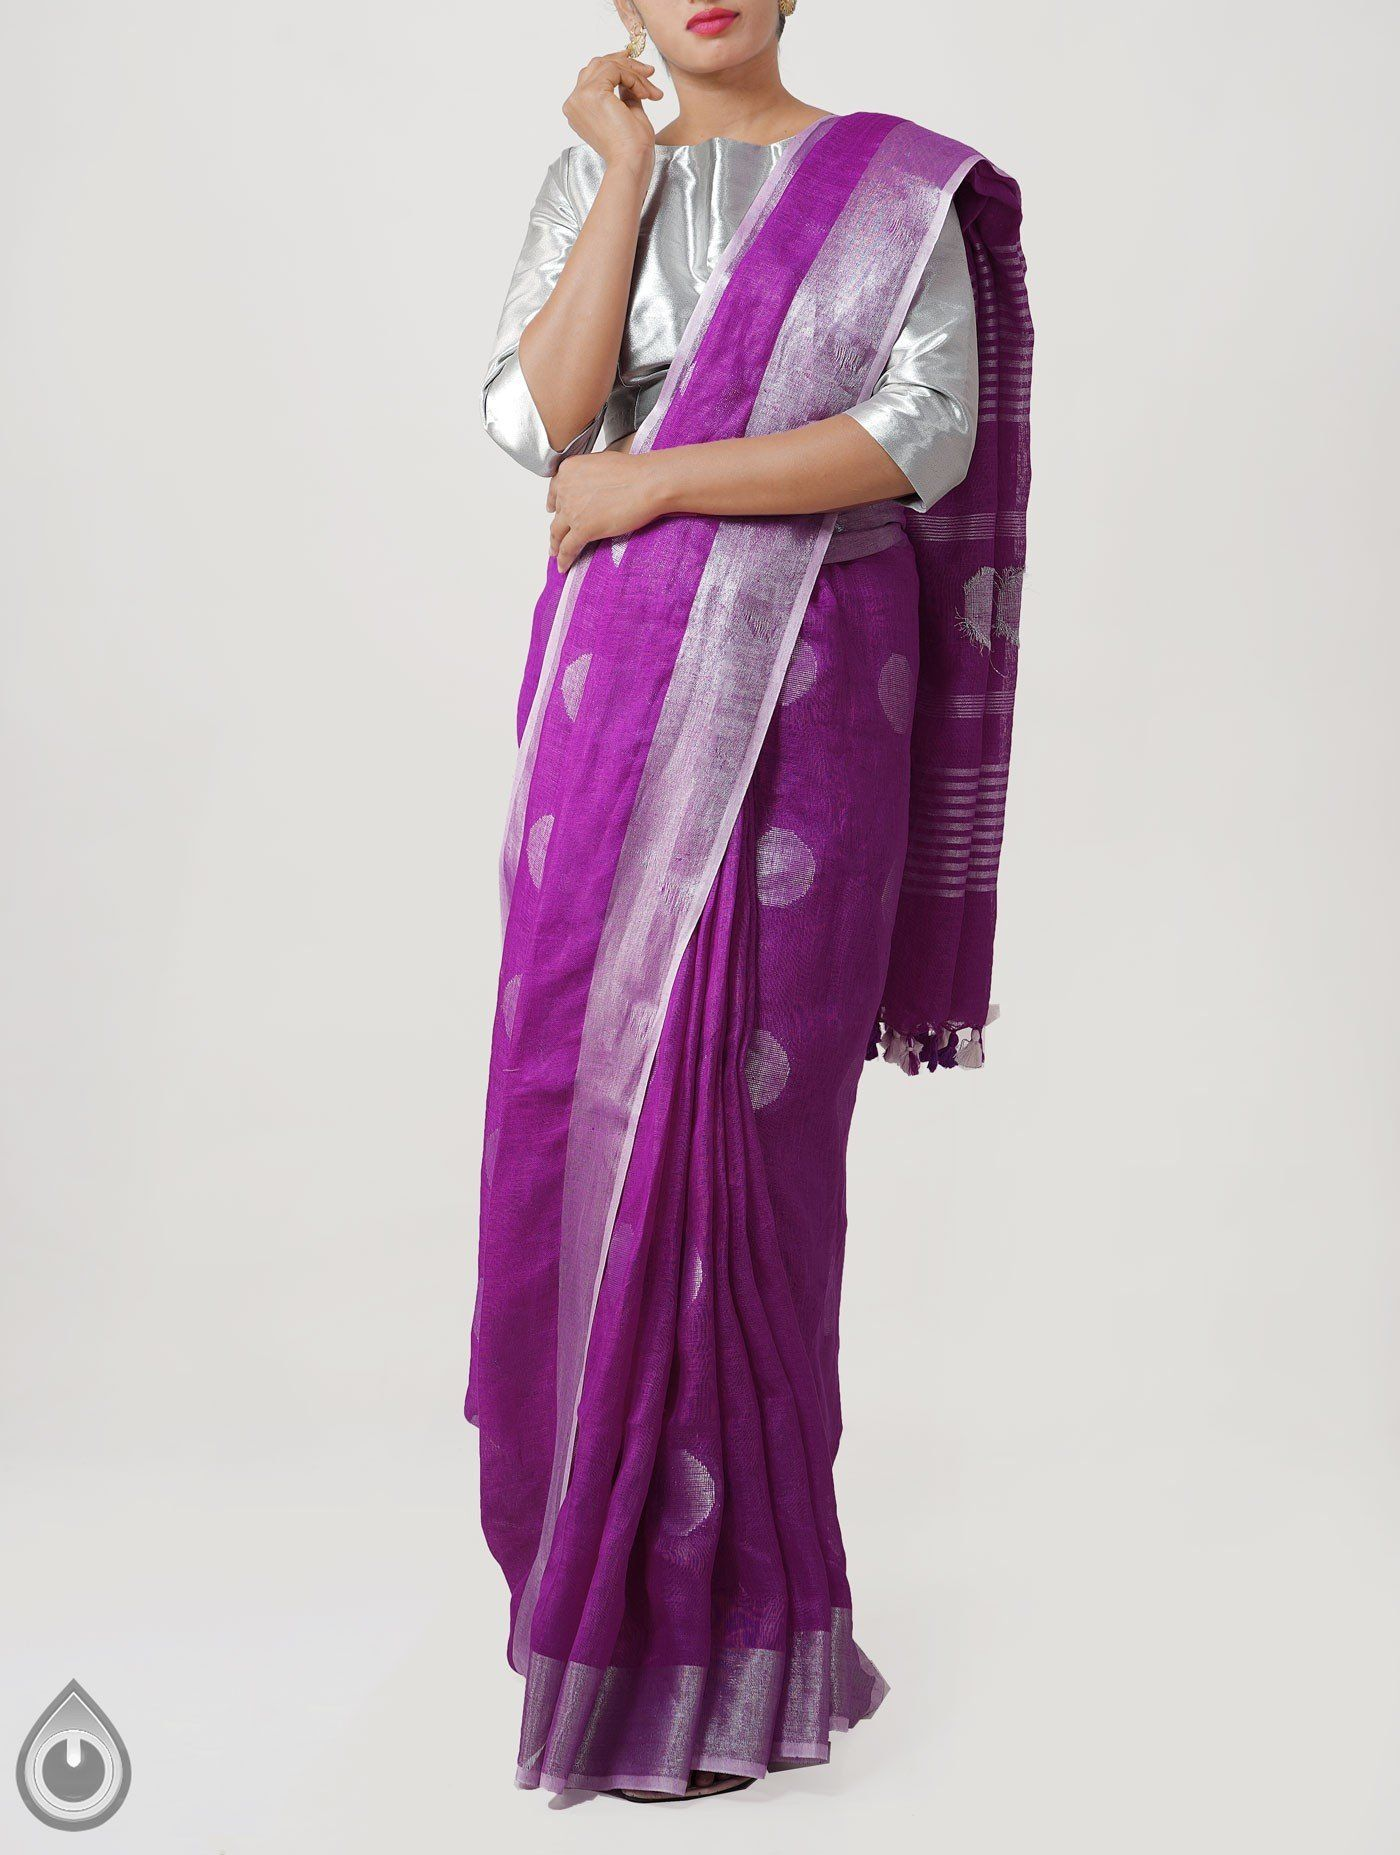 505e0a7c88 Purple Pure Handloom Linen saree with self color blouse. This saree has got  all over silver zari motifs along with silver zari woven border on either  side.